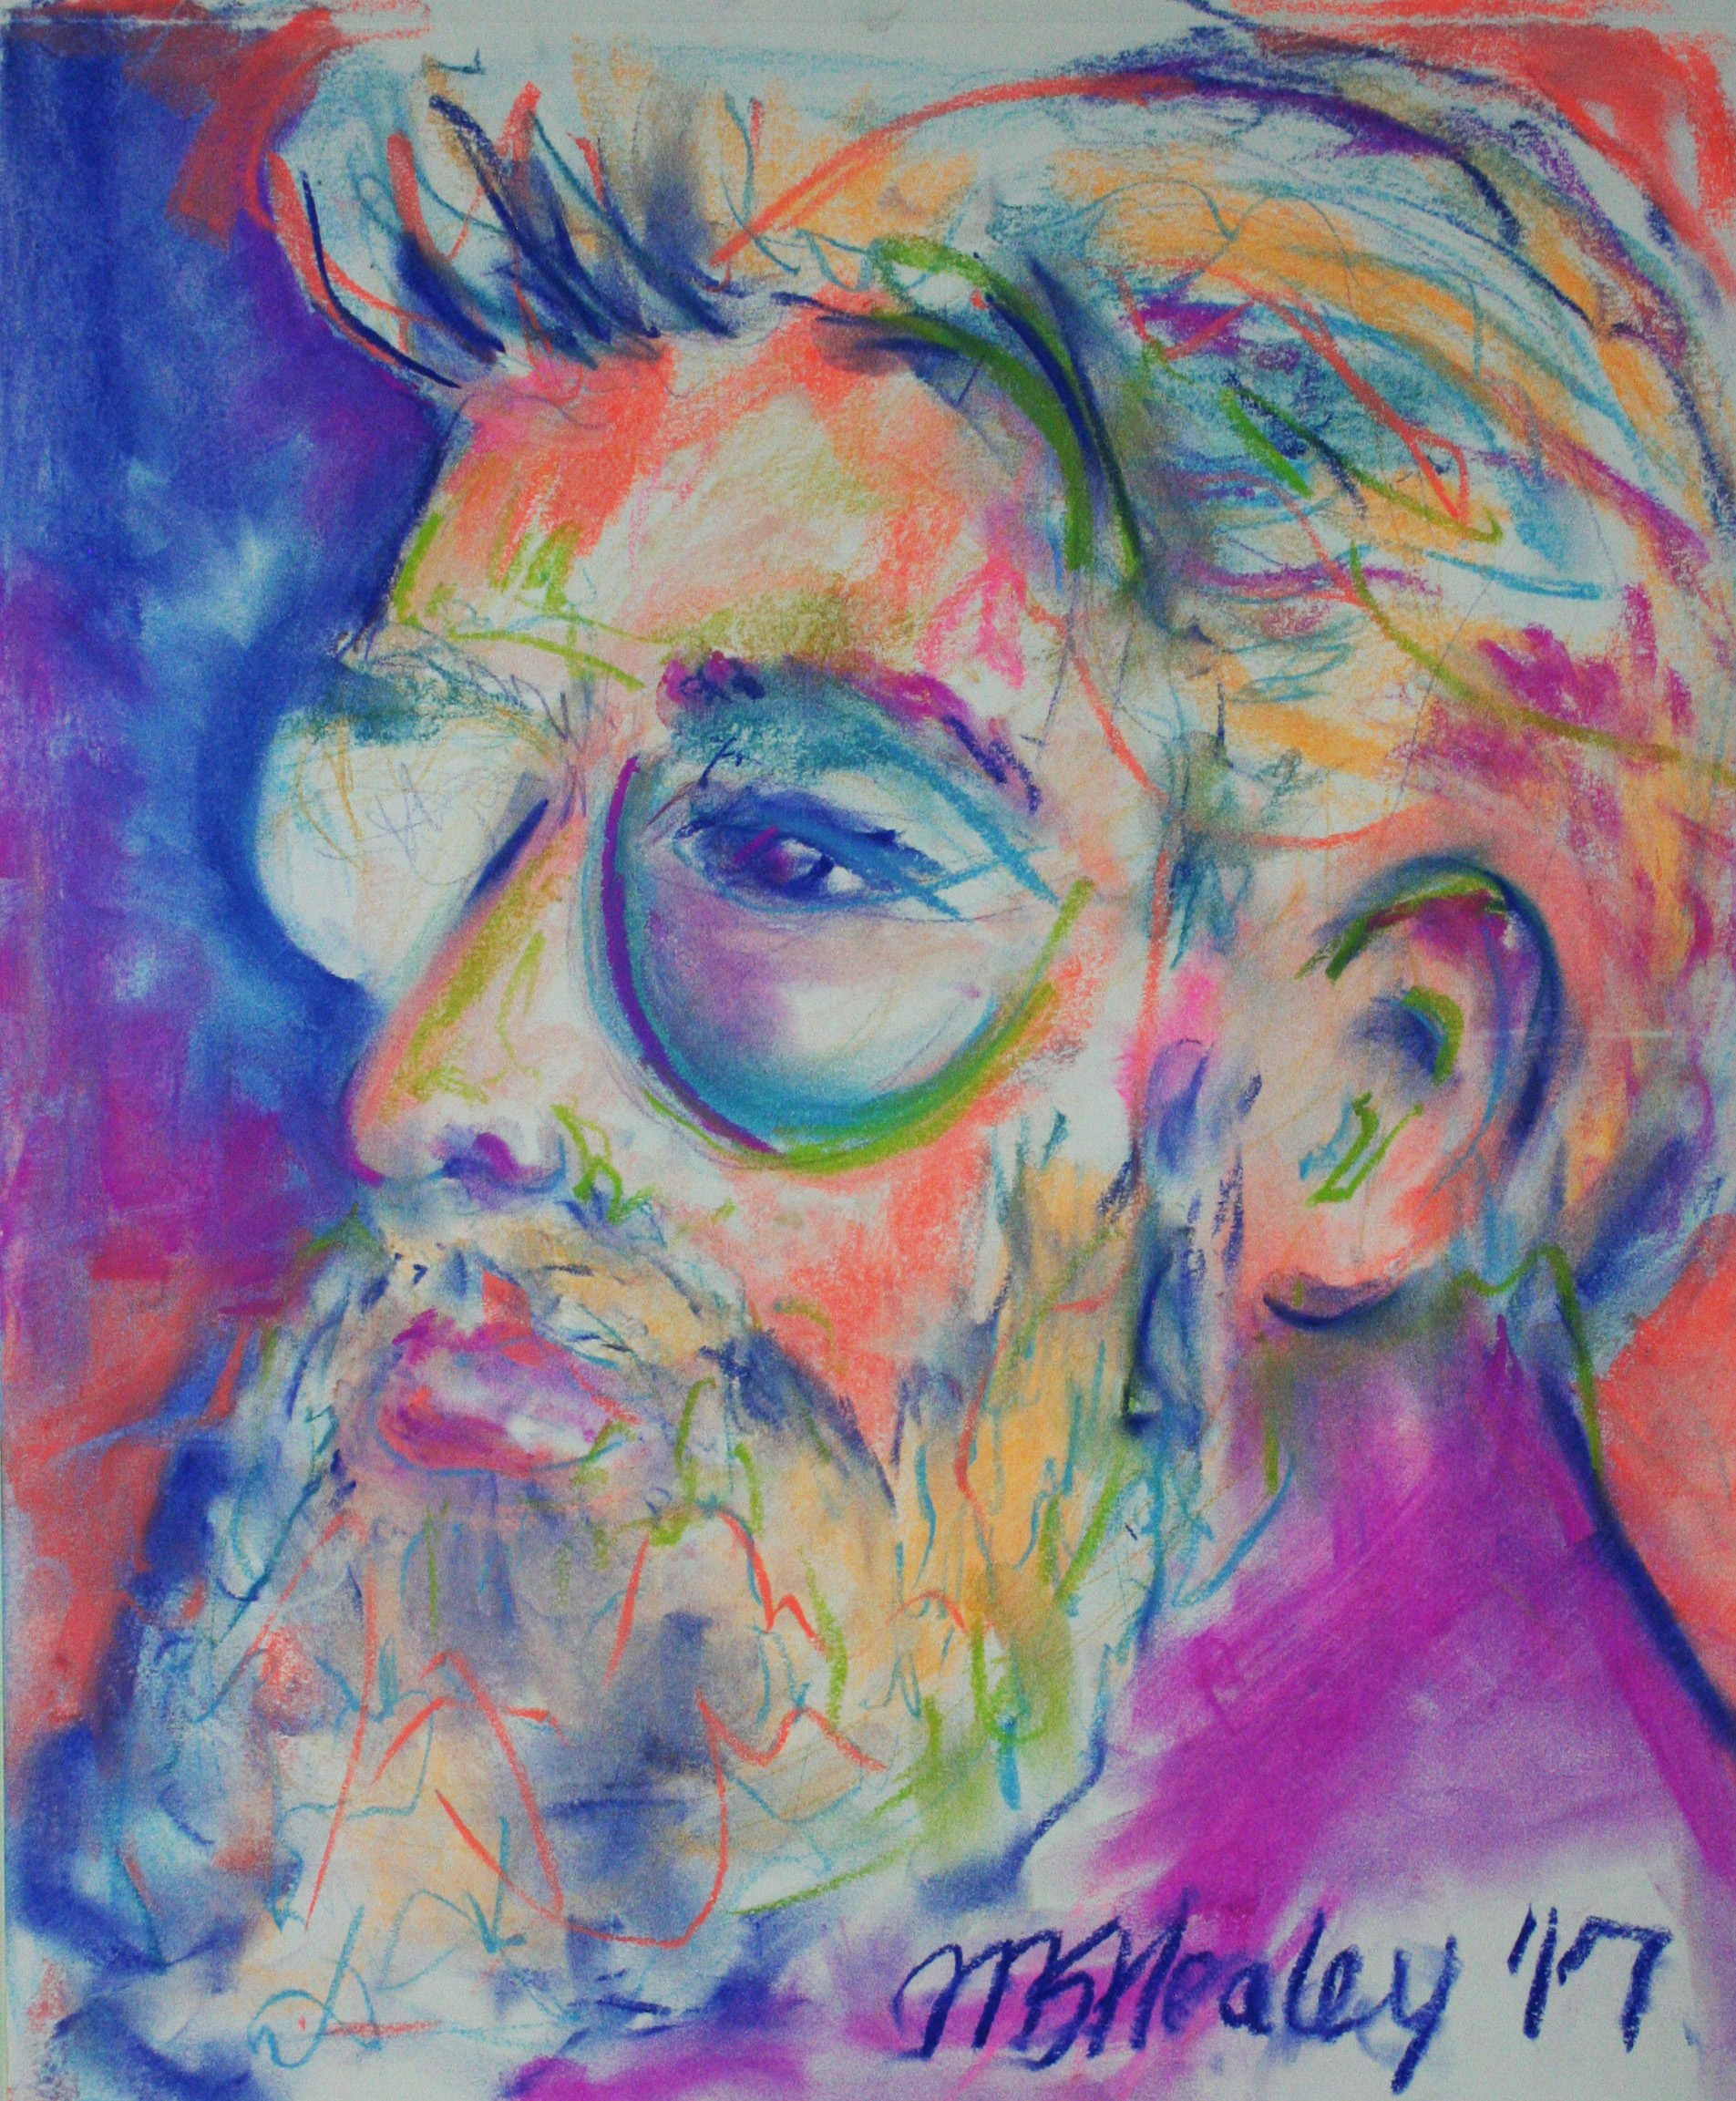 Margaret Schnell Healey did this half hour pastel drawing.